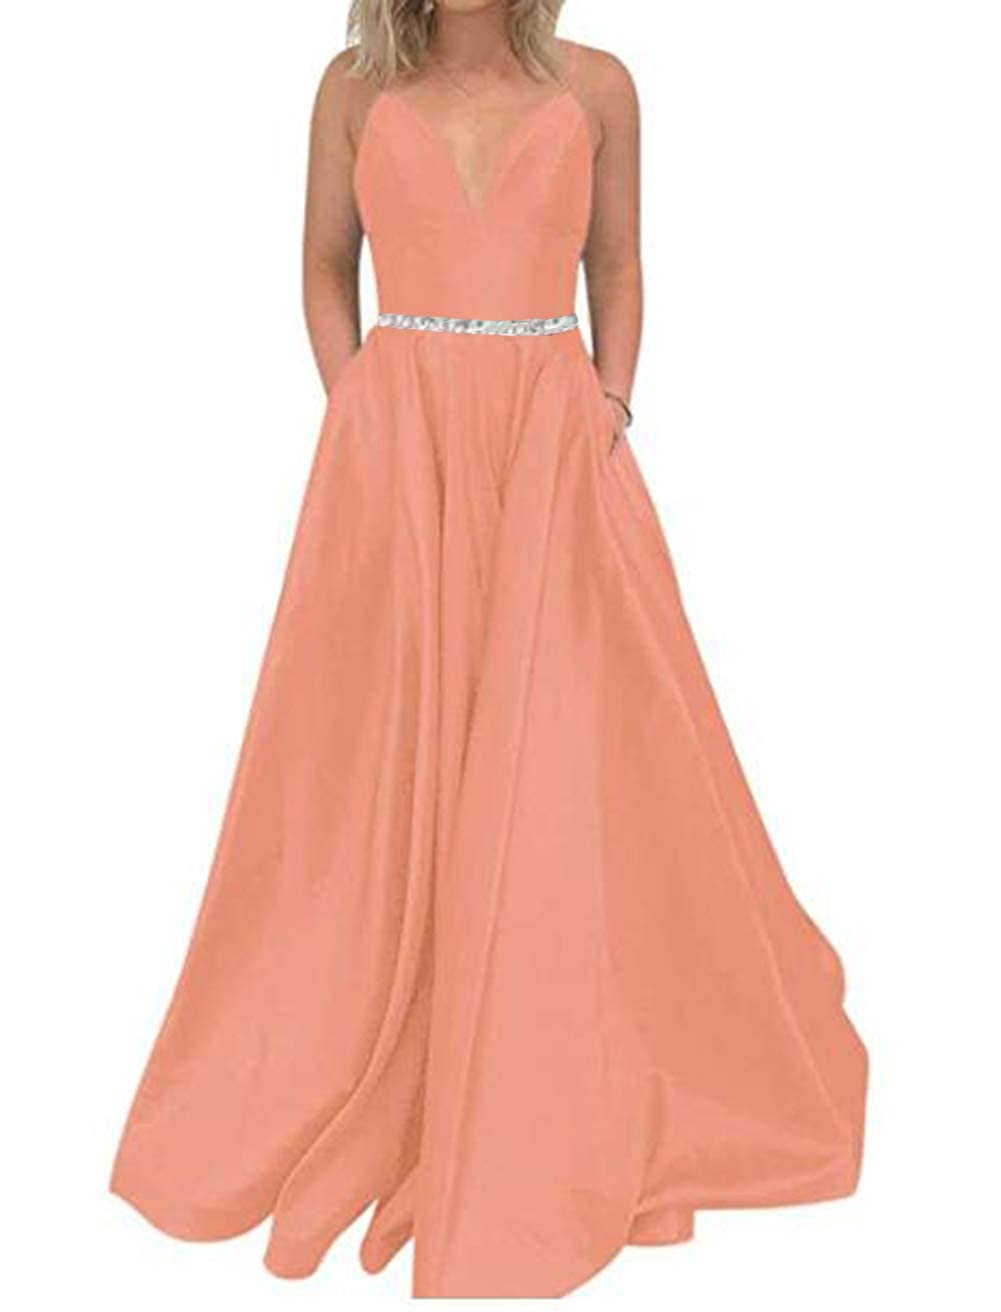 Coral Tsbridal Women's A Line Bead Prom Dresses V Neck Satin with Pockets Evening Gown